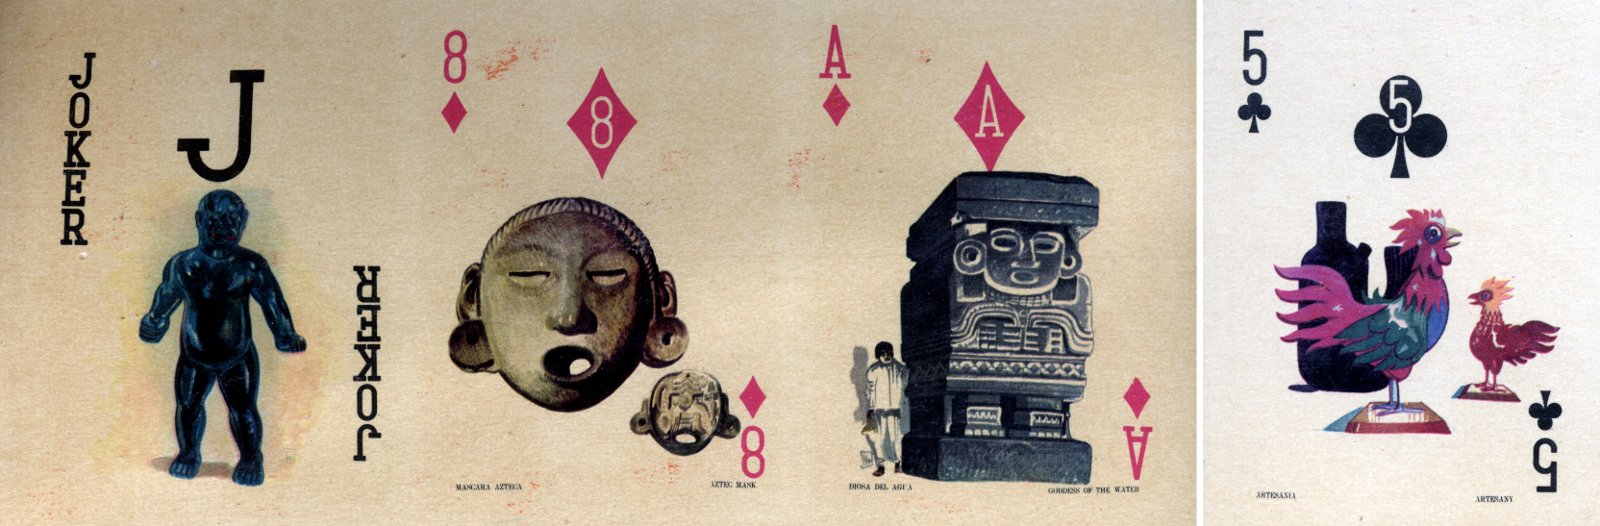 Special pack for Aeronaves de Mexico S.A. designed by Ramón Valdiosera Berman, mid-1960s